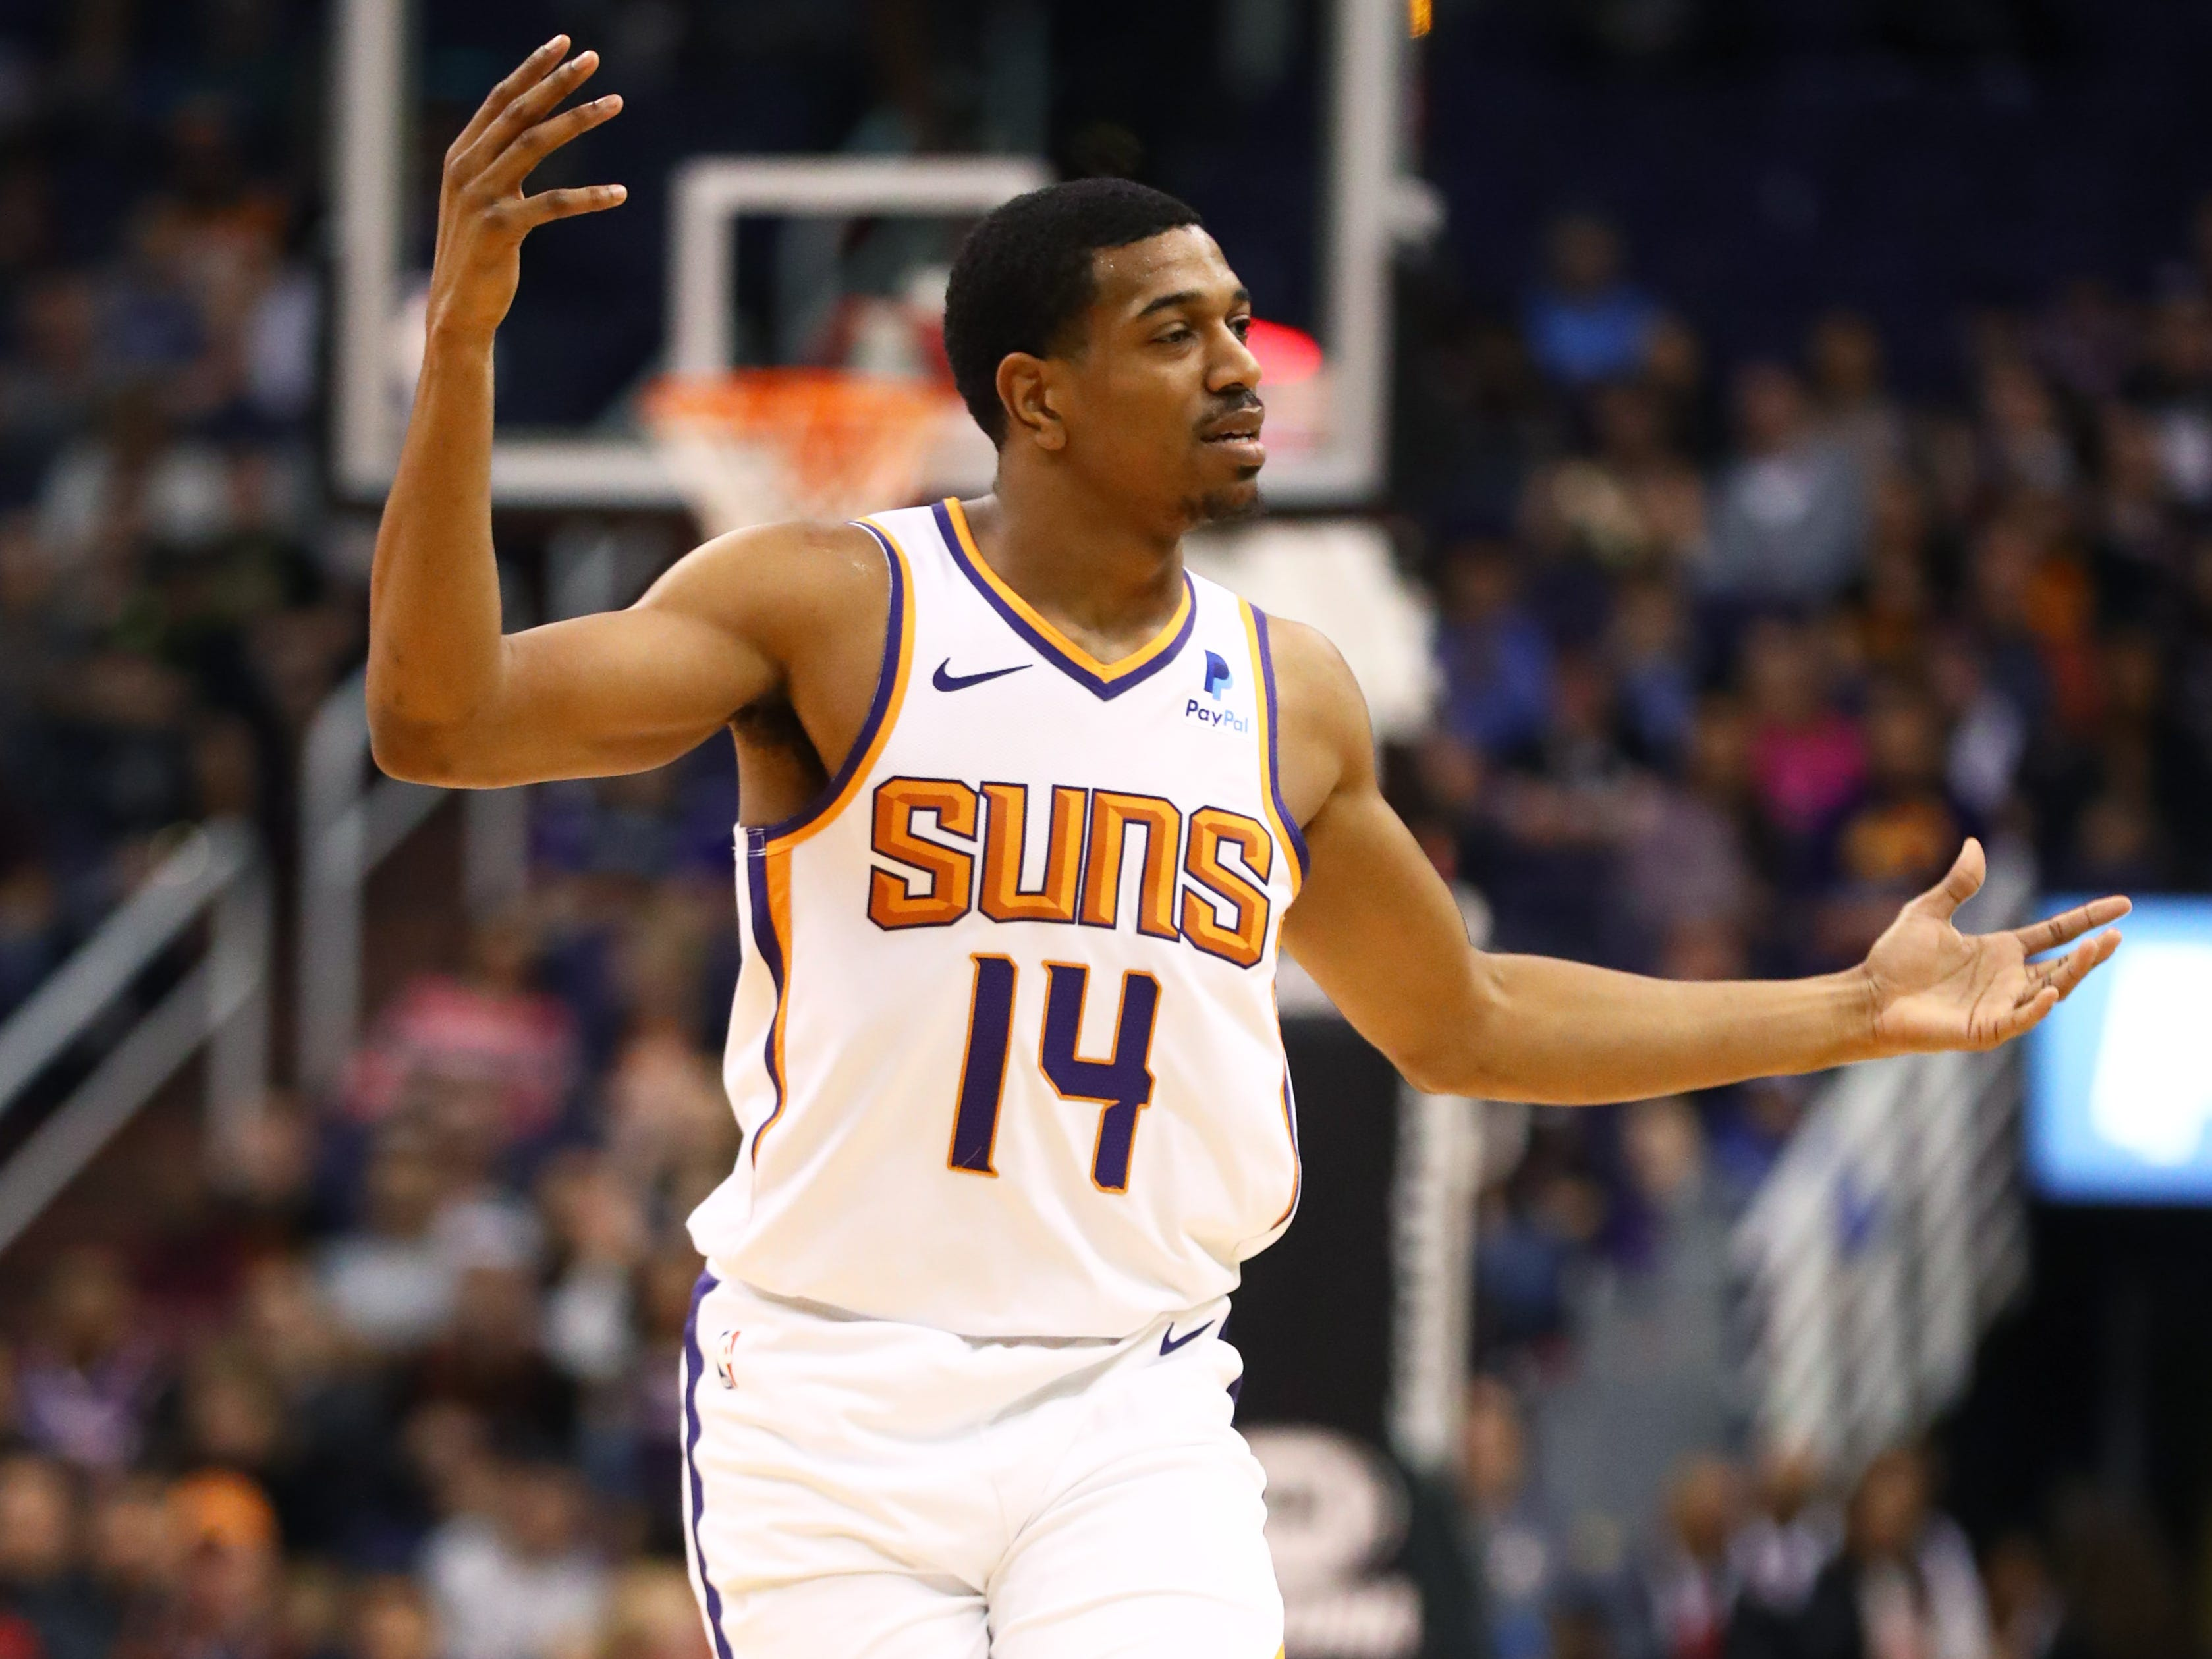 Jan 8, 2019; Phoenix, AZ, USA; Phoenix Suns guard De'Anthony Melton reacts in the first quarter against the Sacramento Kings at Talking Stick Resort Arena. Mandatory Credit: Mark J. Rebilas-USA TODAY Sports